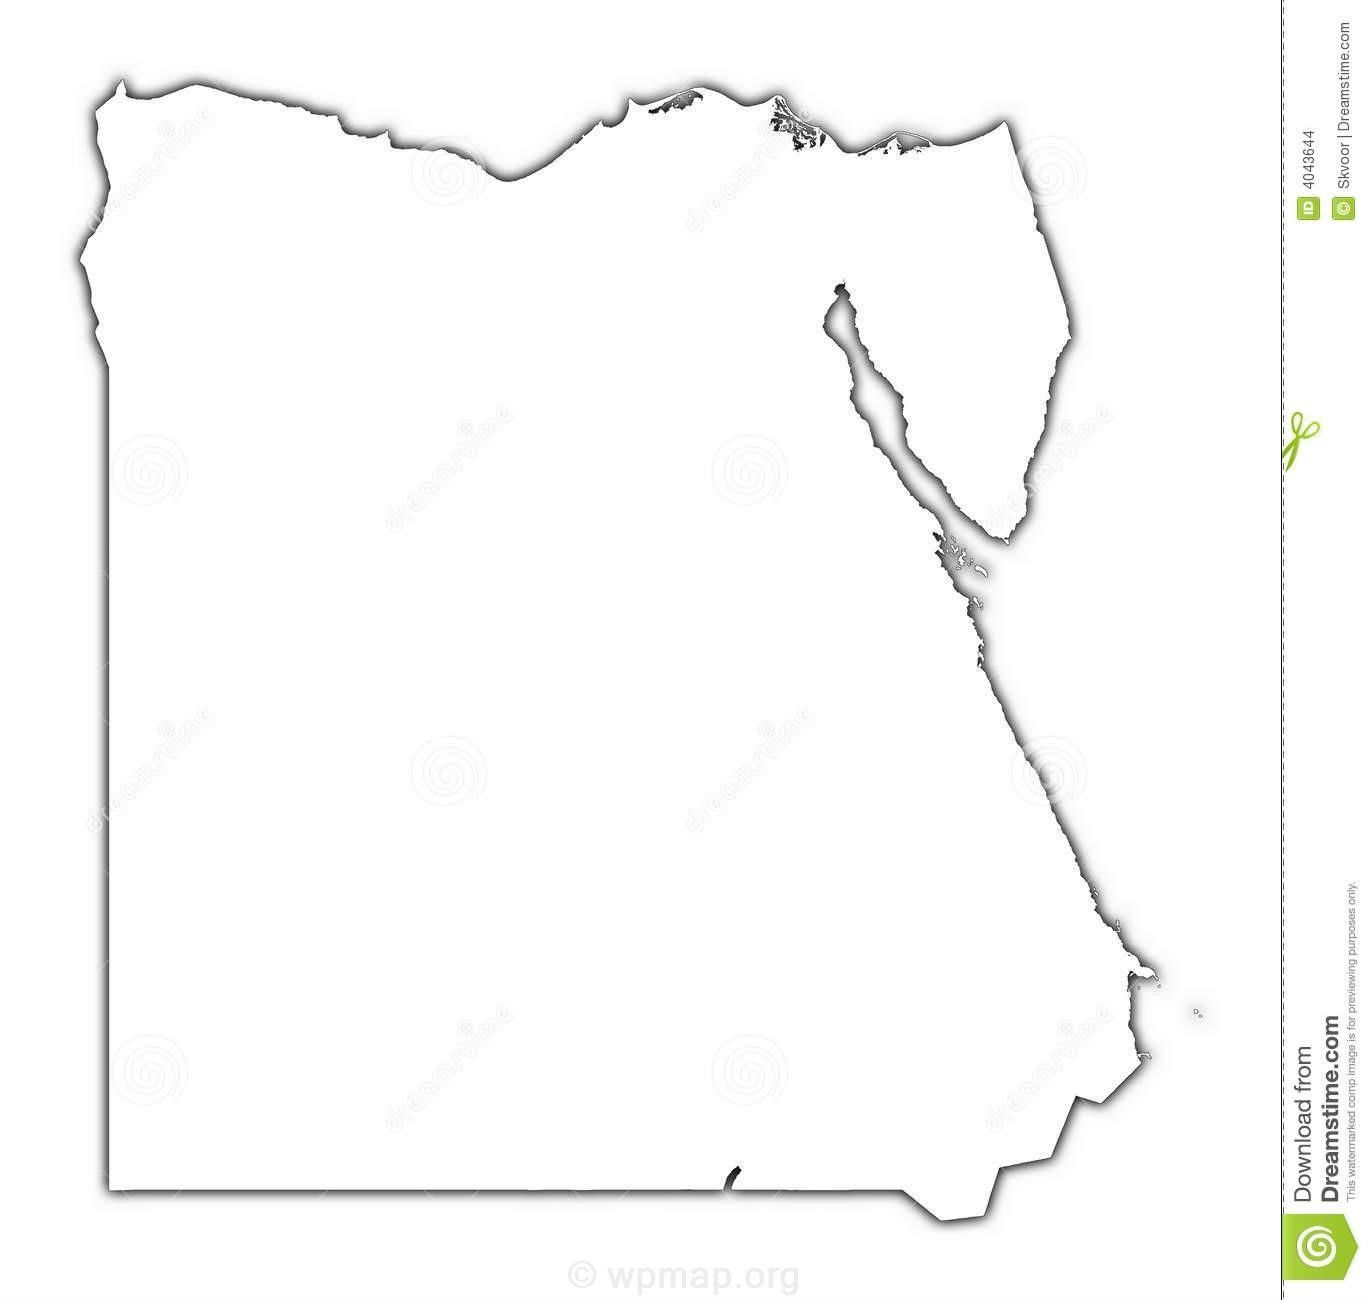 Blank Map of Egypt Check more at | maps